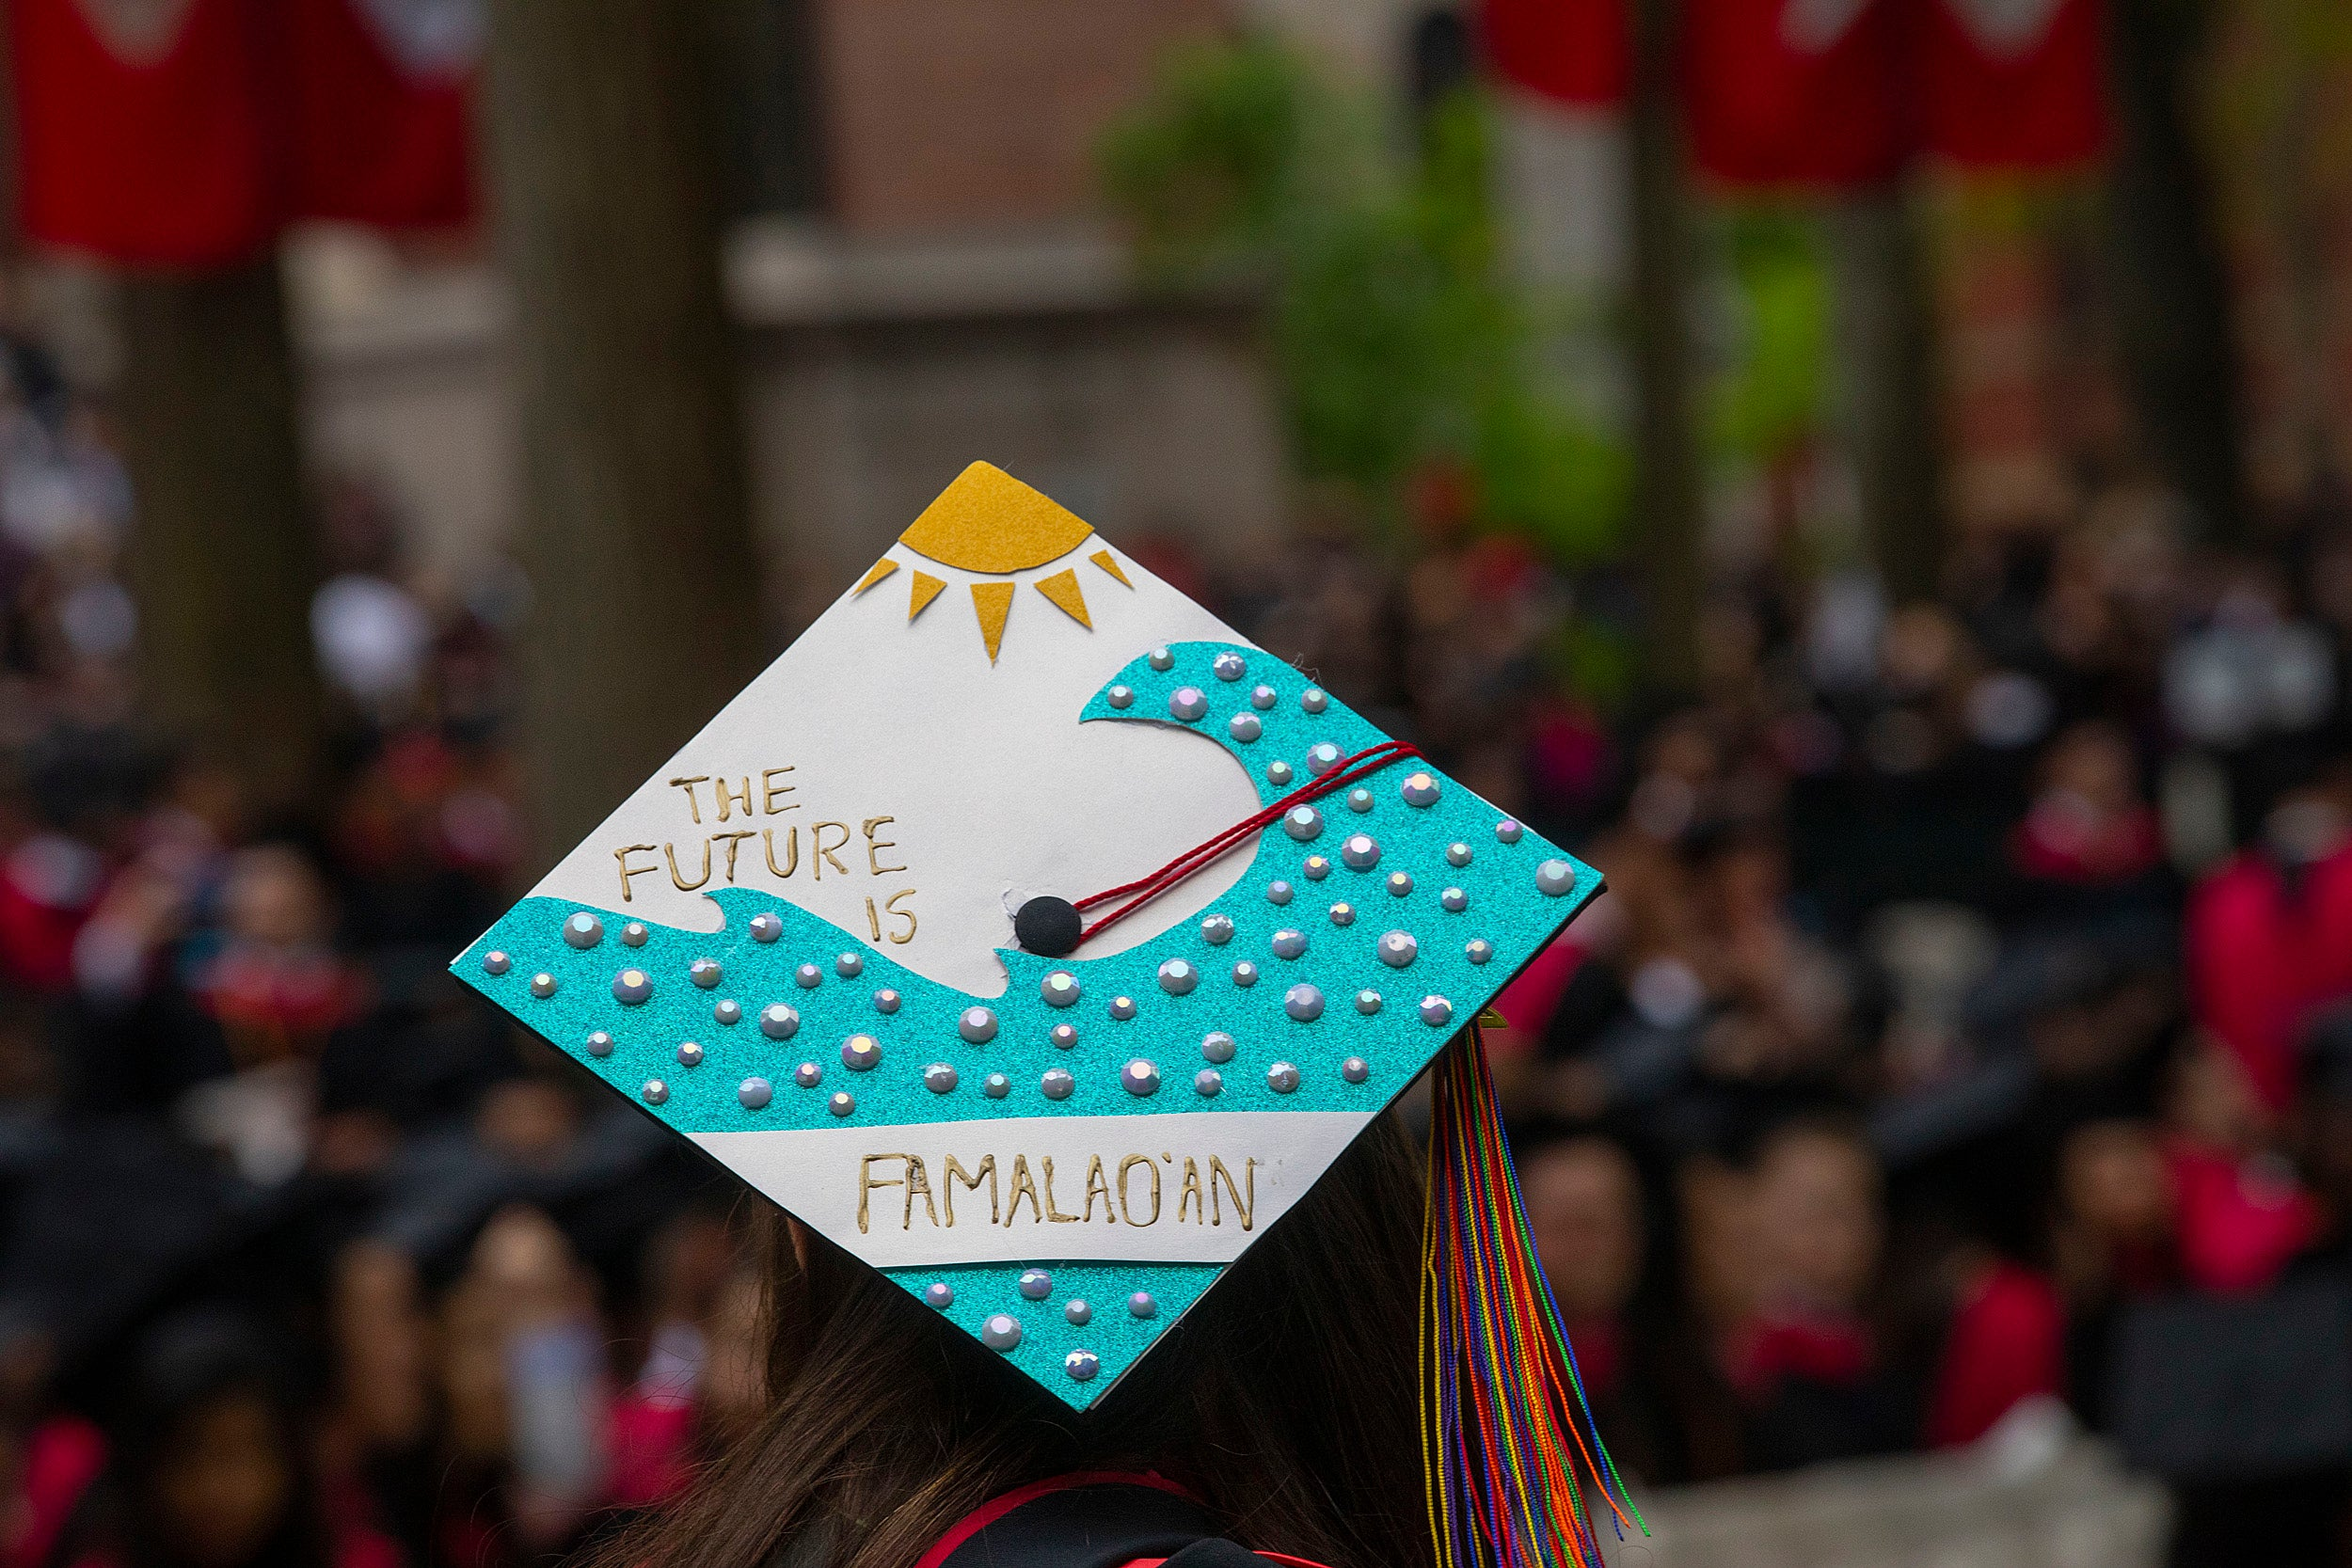 A decorated grad cap